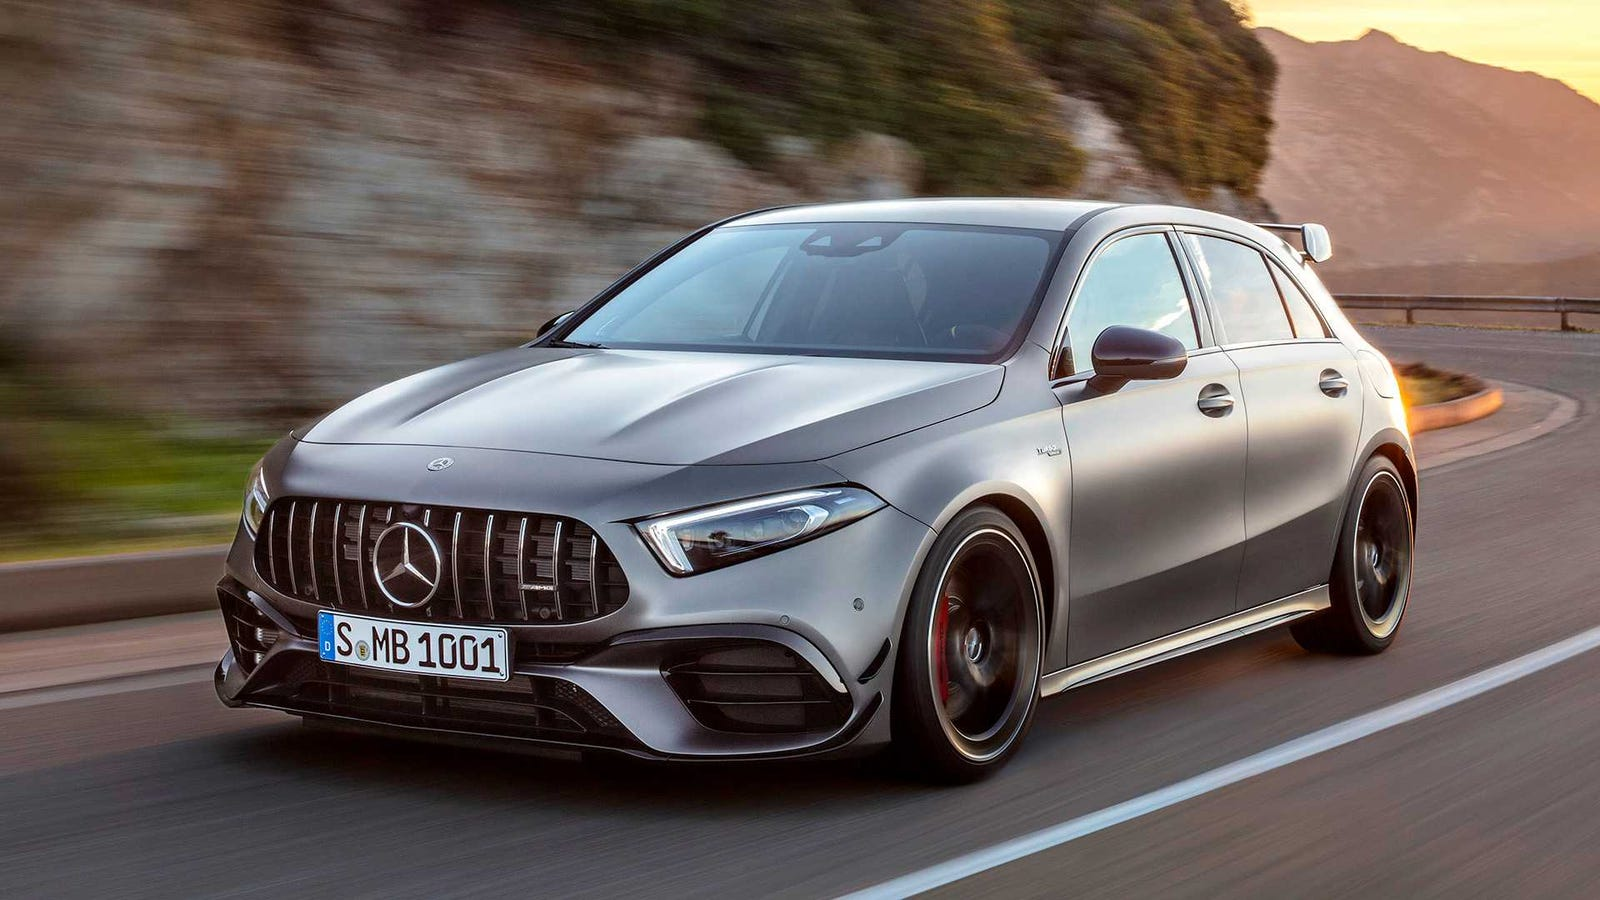 The 2020 Mercedes Amg A45 S Is The Hottest Hatch With A Wholly